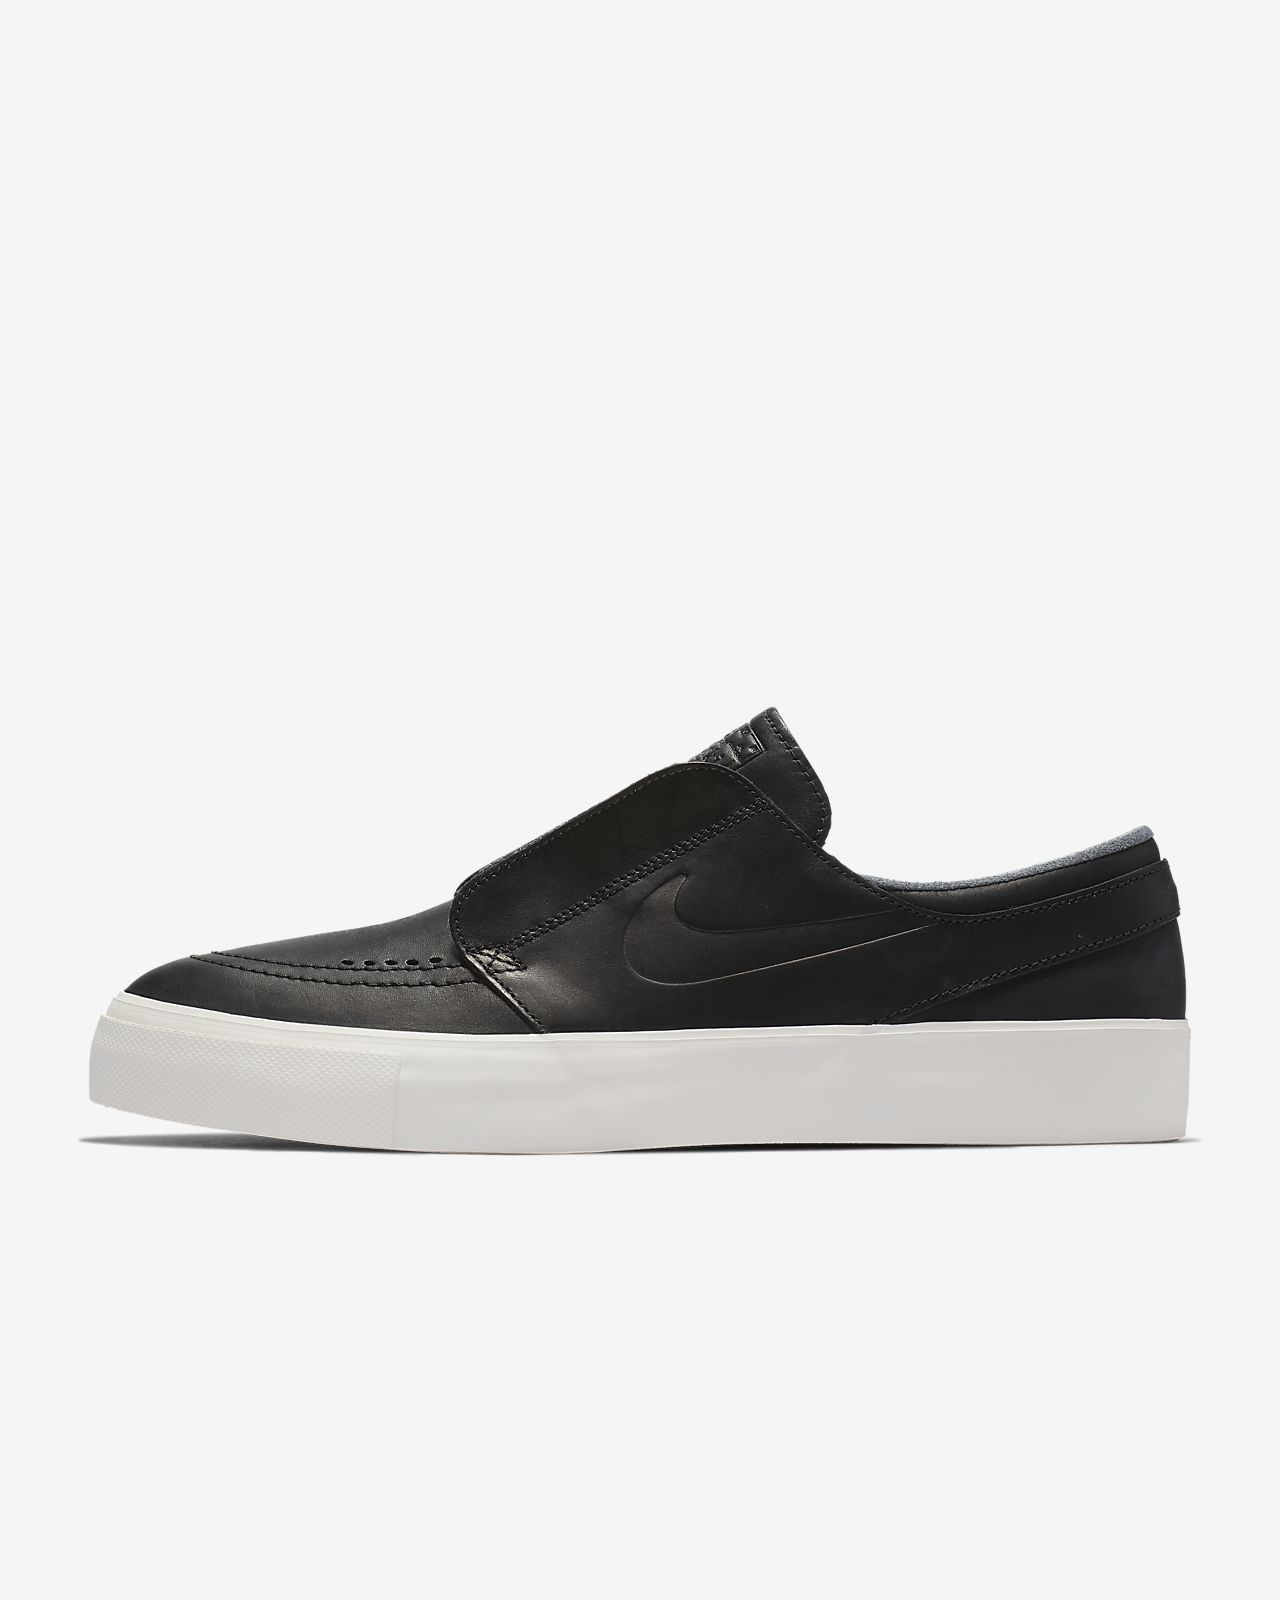 new product b4396 7c669 ... Nike SB Zoom Janoski HT Slip Premium Men s Skate Shoe